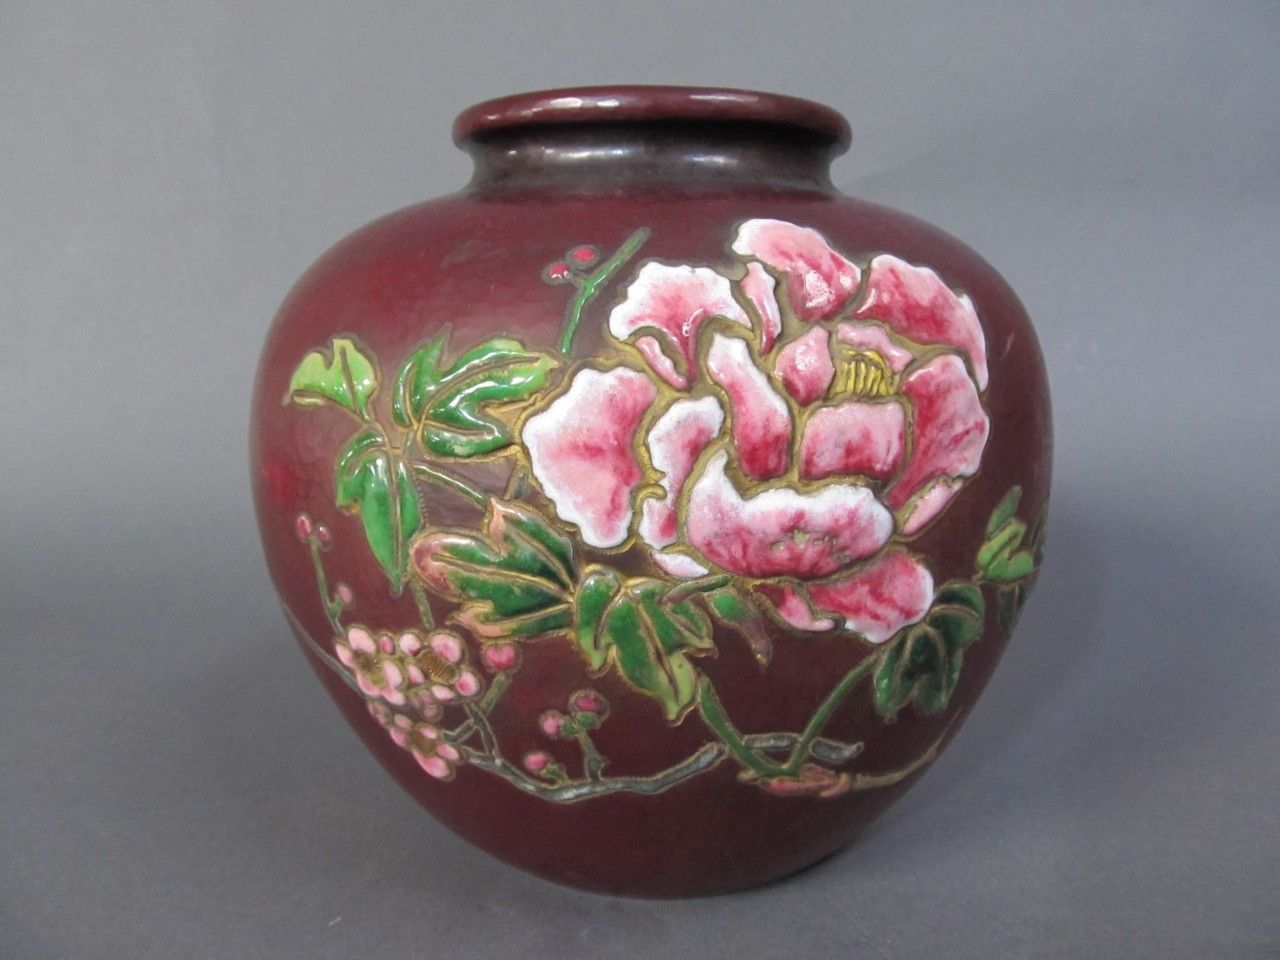 Antique Japanese brass flower vase priced at only $800 for Spring. This unique piece was made during the Late Showa period and stands 8 inches tall.